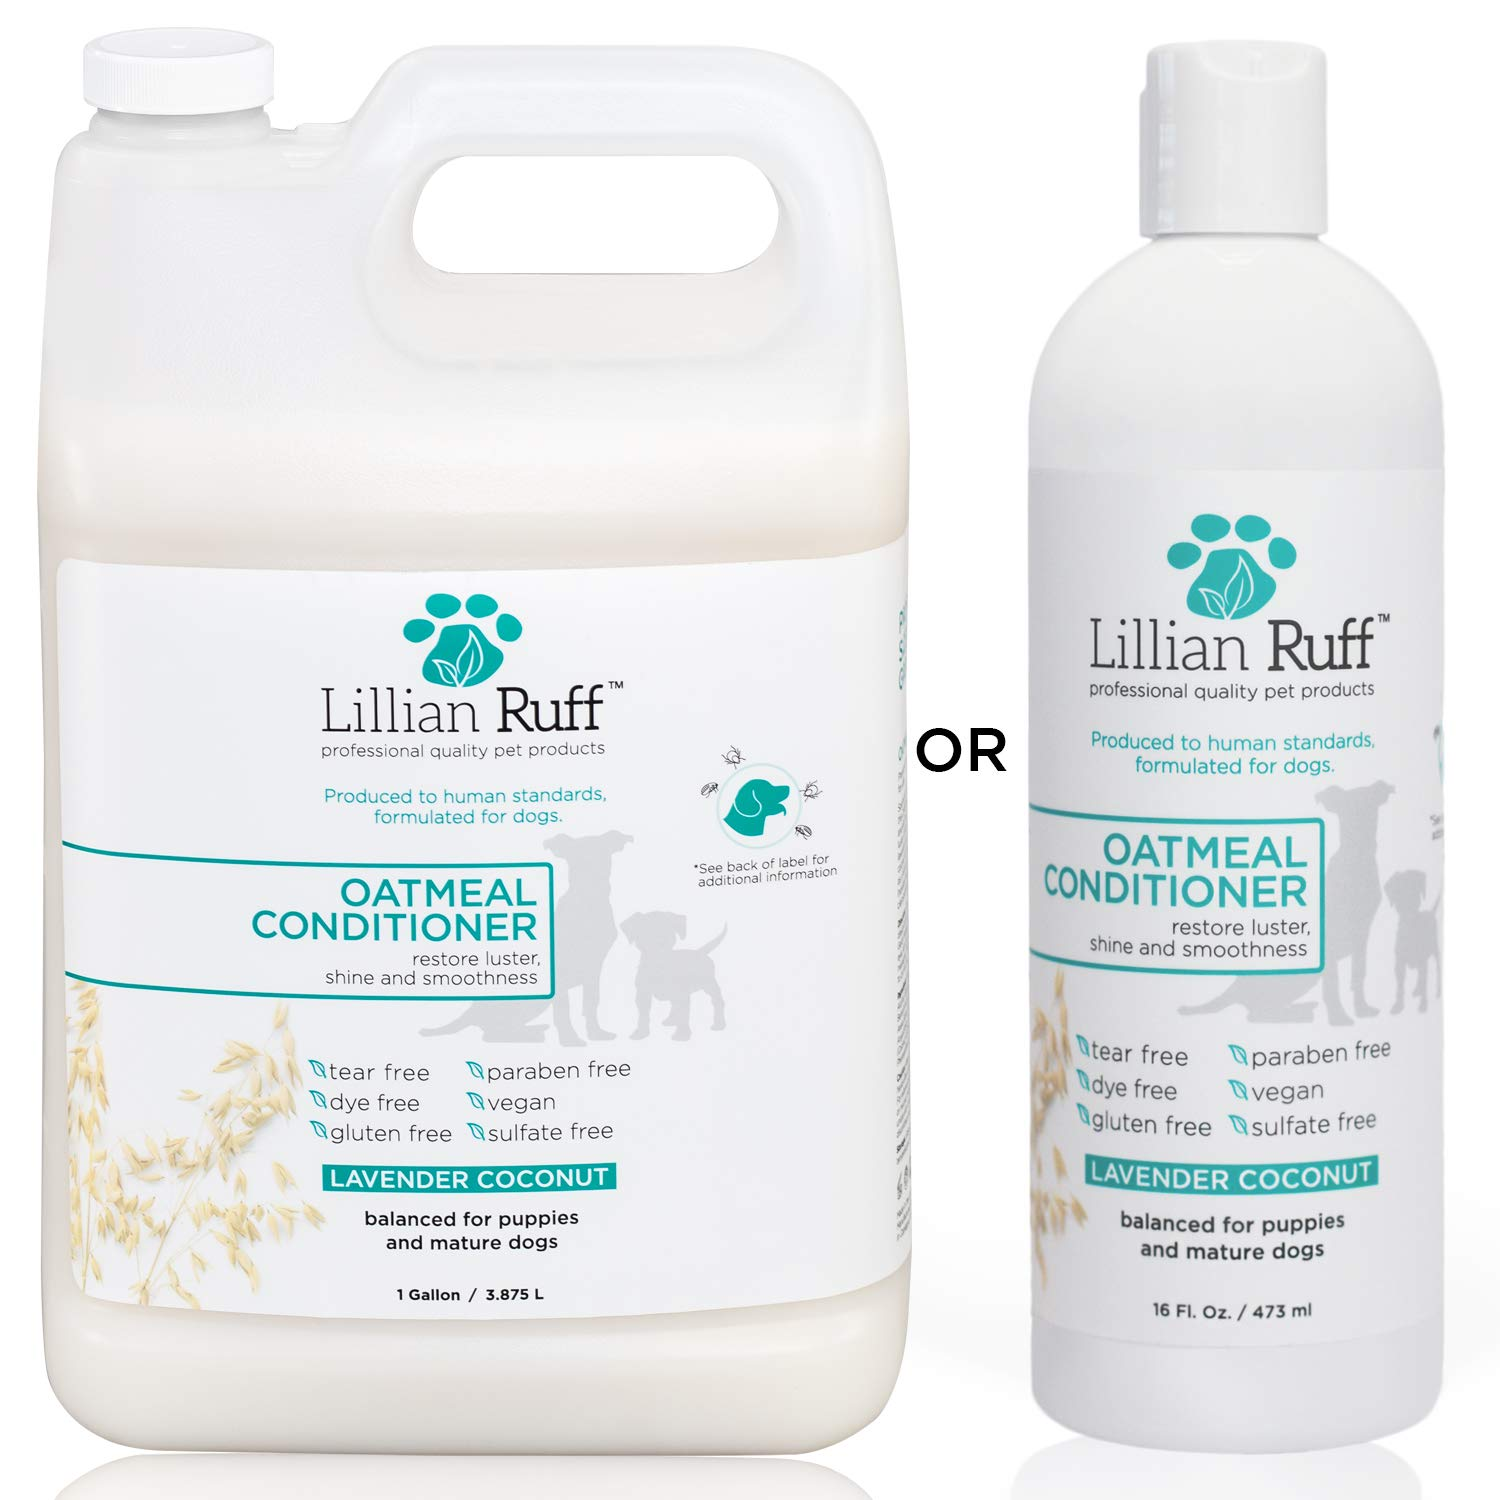 Lillian Ruff Dog Oatmeal Conditioner - Safe for Cats - Lavender Coconut Scent for Itchy Dry Skin with Aloe - Soothe Skin Irritation and Relieve itching by Lillian Ruff